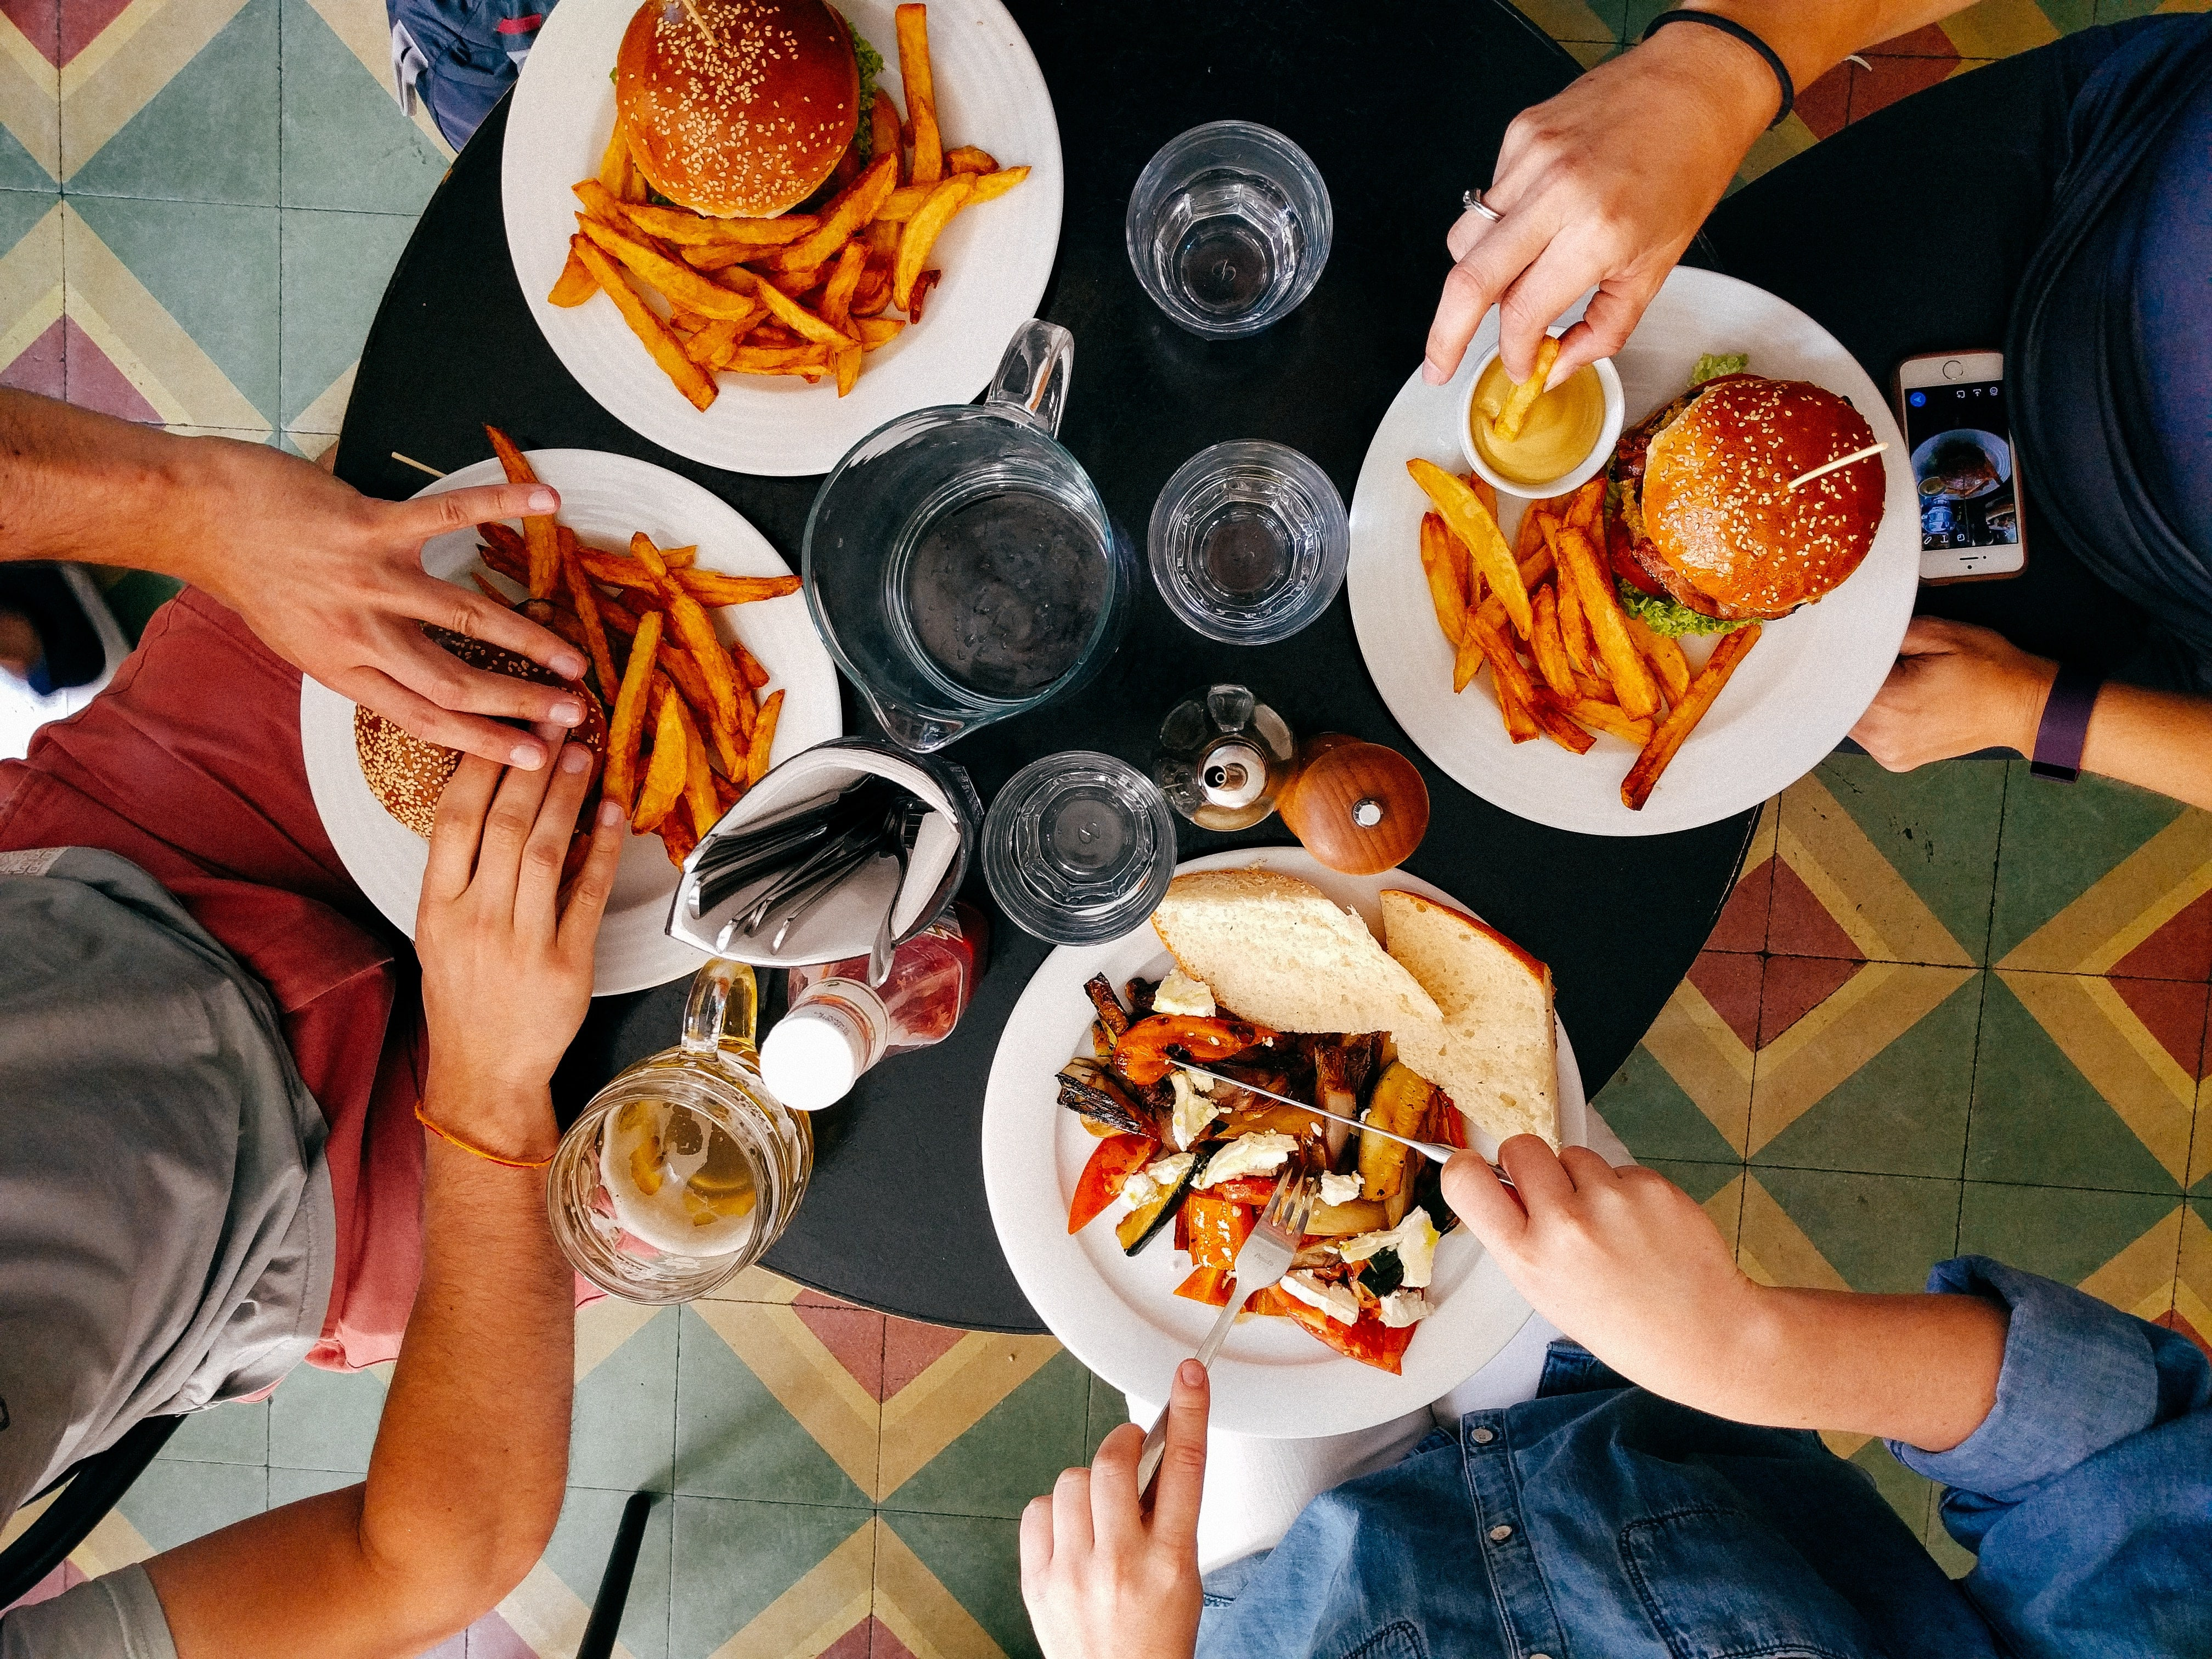 Group Travel, family dinners, Photo by Dan Gold on Unsplash